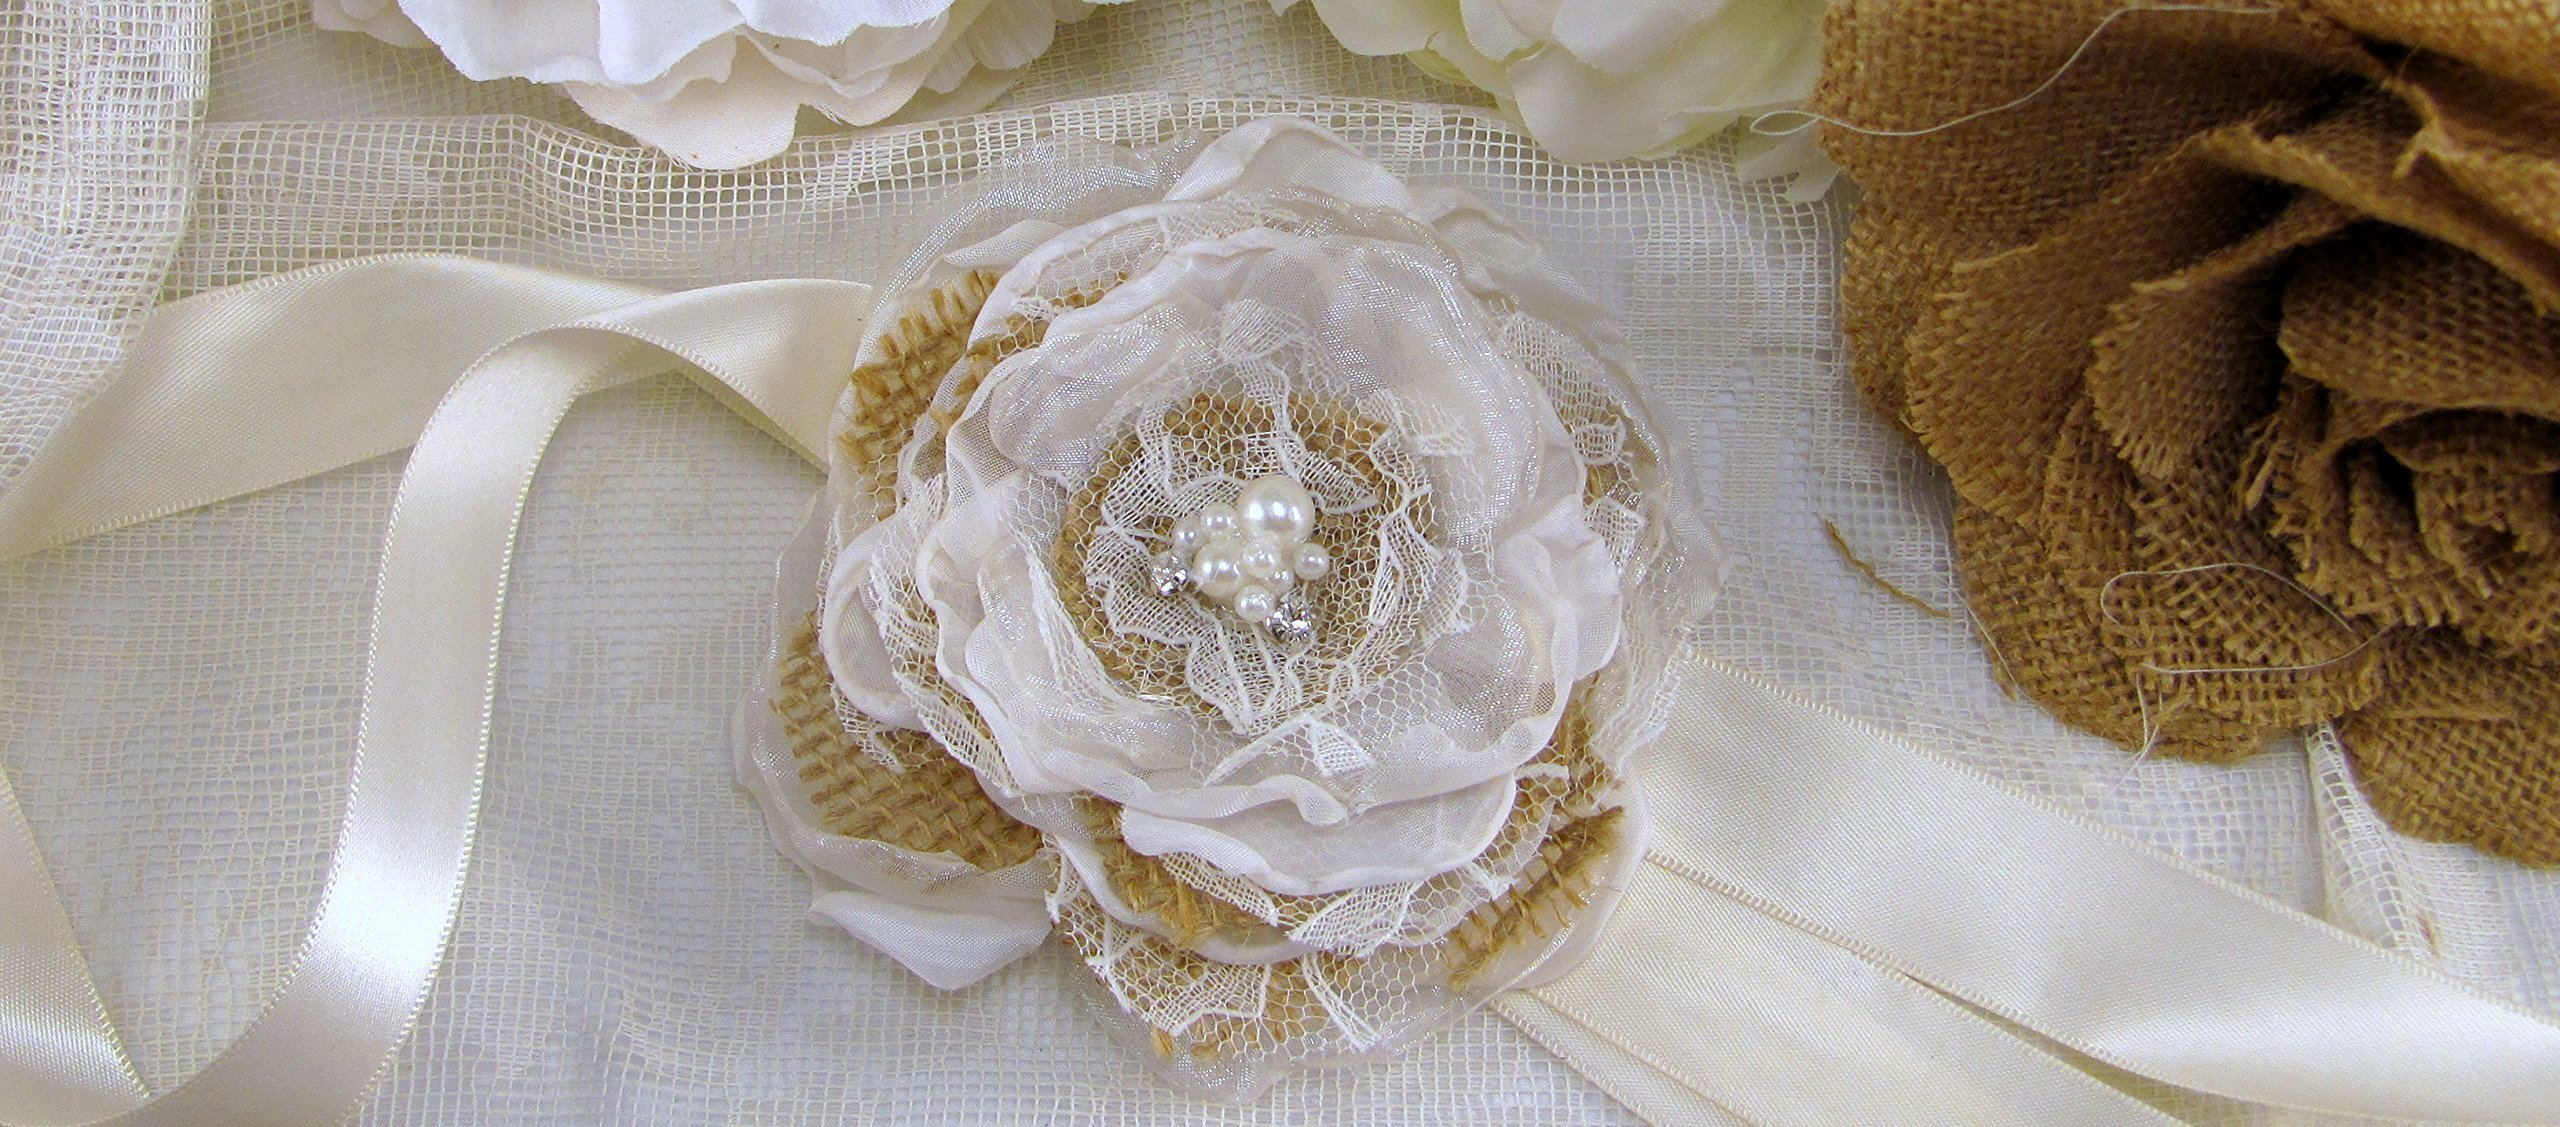 Burlap Wedding Corsage, Fabric flower Corsage, wrist corsage, Bridal Accessory, Rustic flower Corsage,bridal shower corsage,burlap accessories